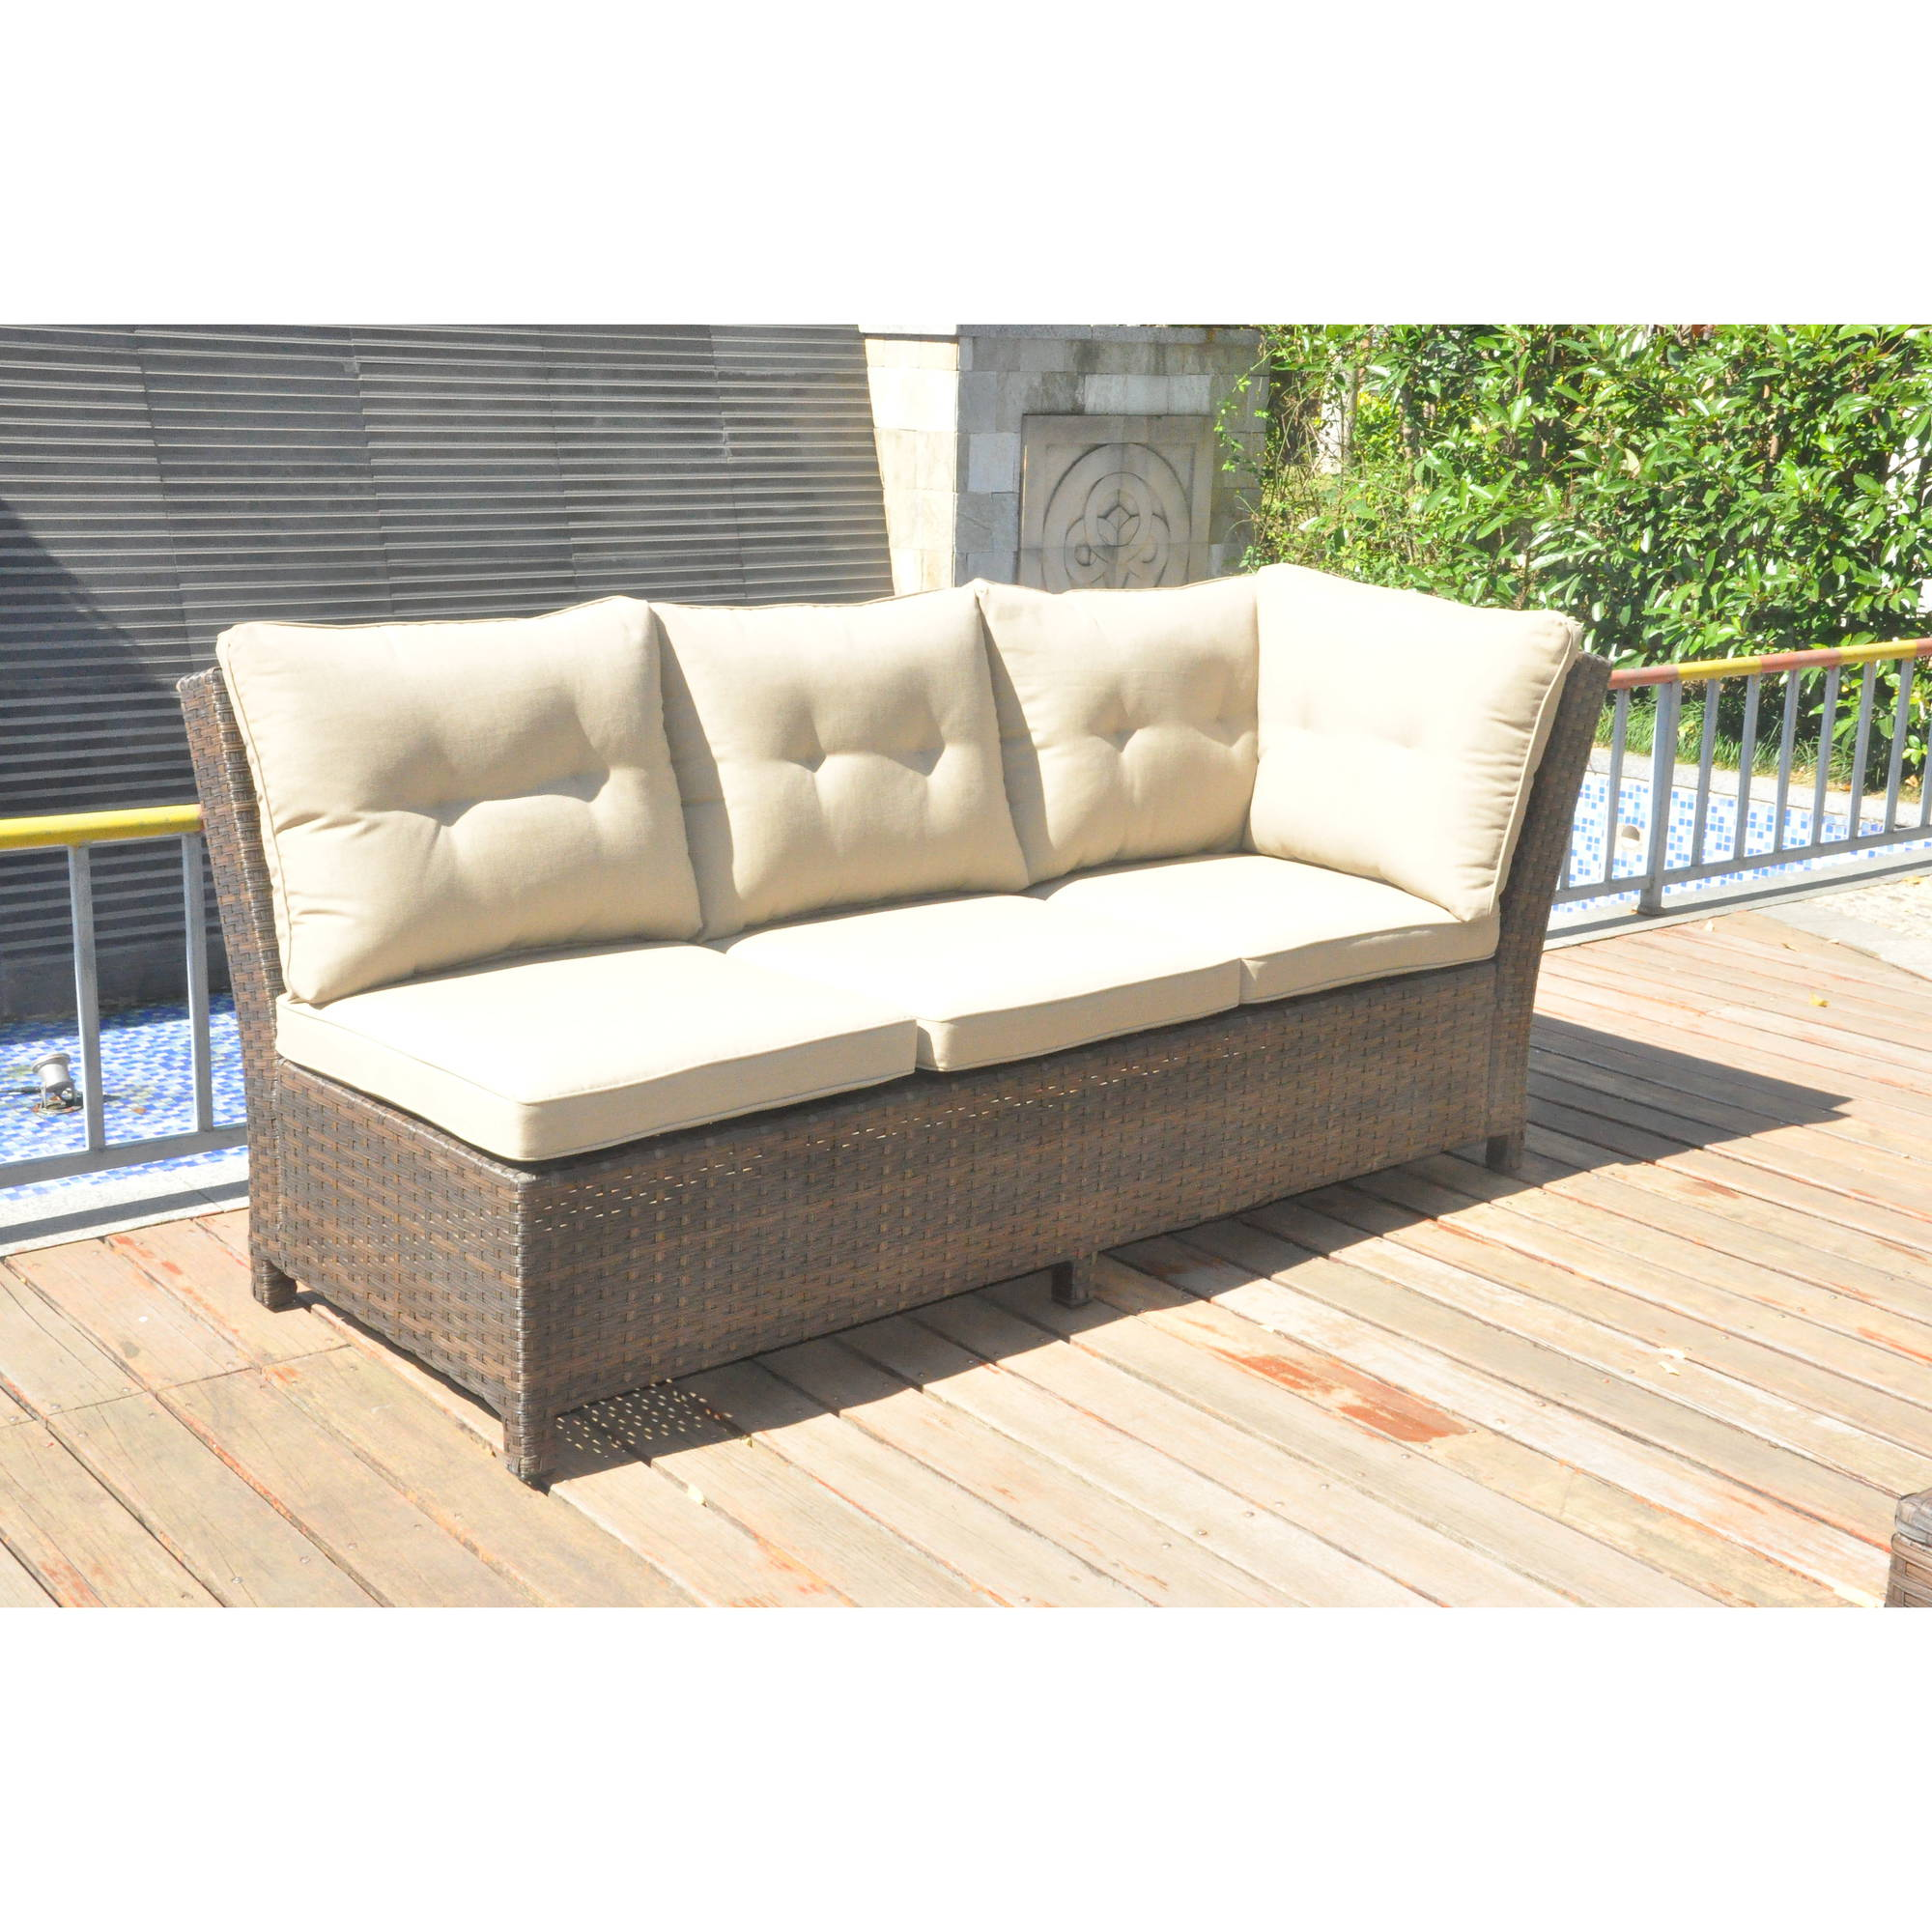 Enjoyable Better Homes And Gardens Baytown 5 Piece Woven Sectional Sofa Set Seats 5 Uwap Interior Chair Design Uwaporg